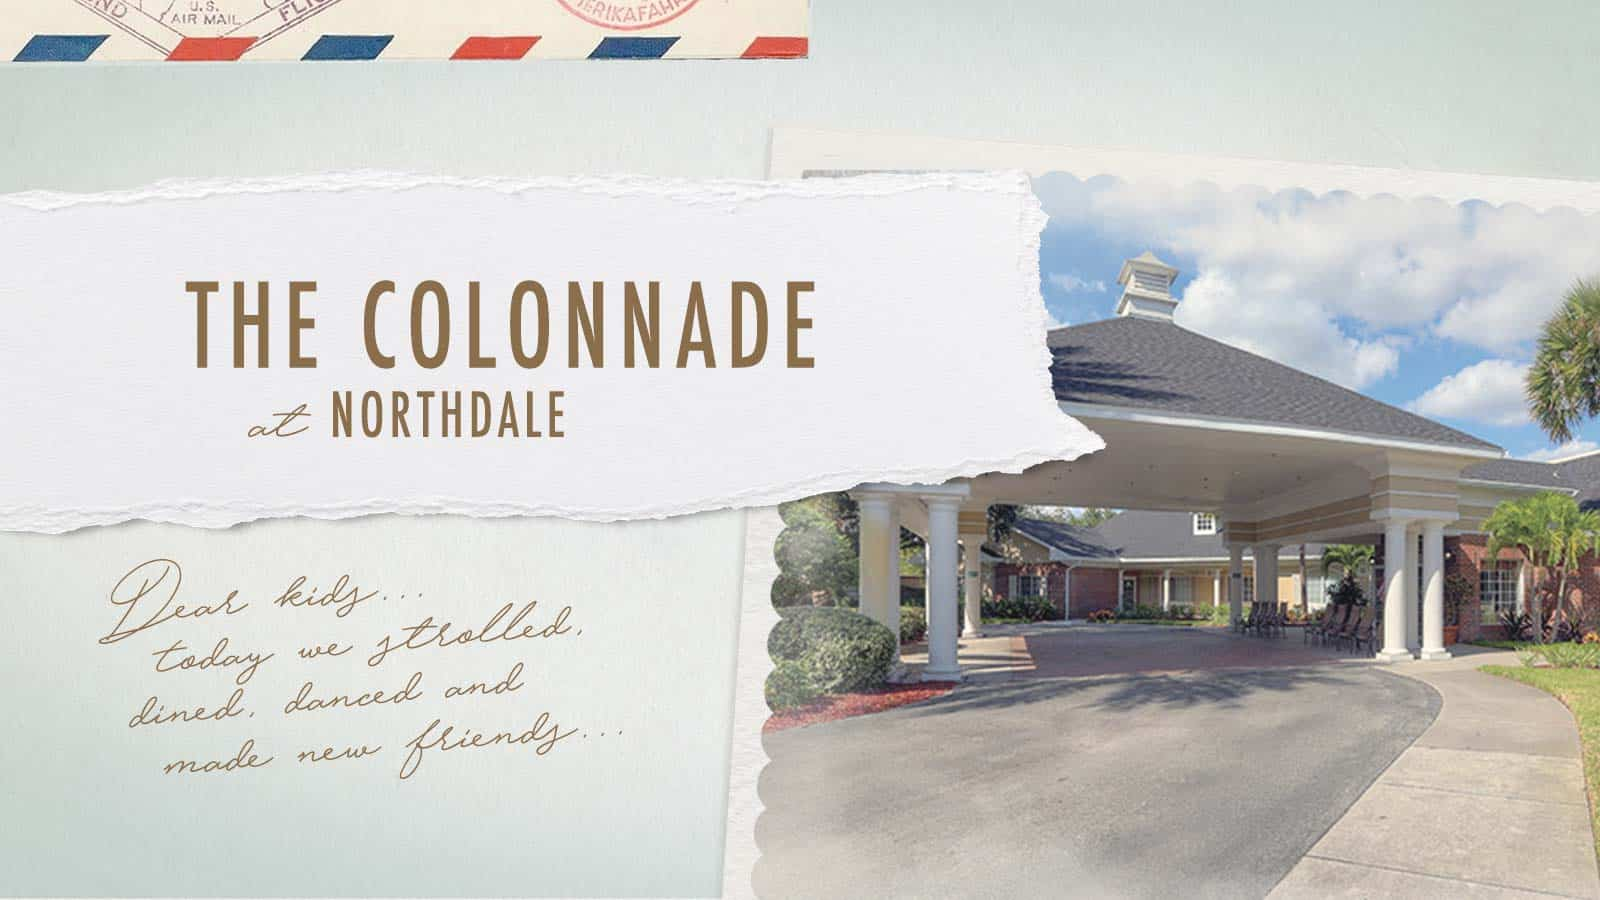 The Colonnade at Northdale